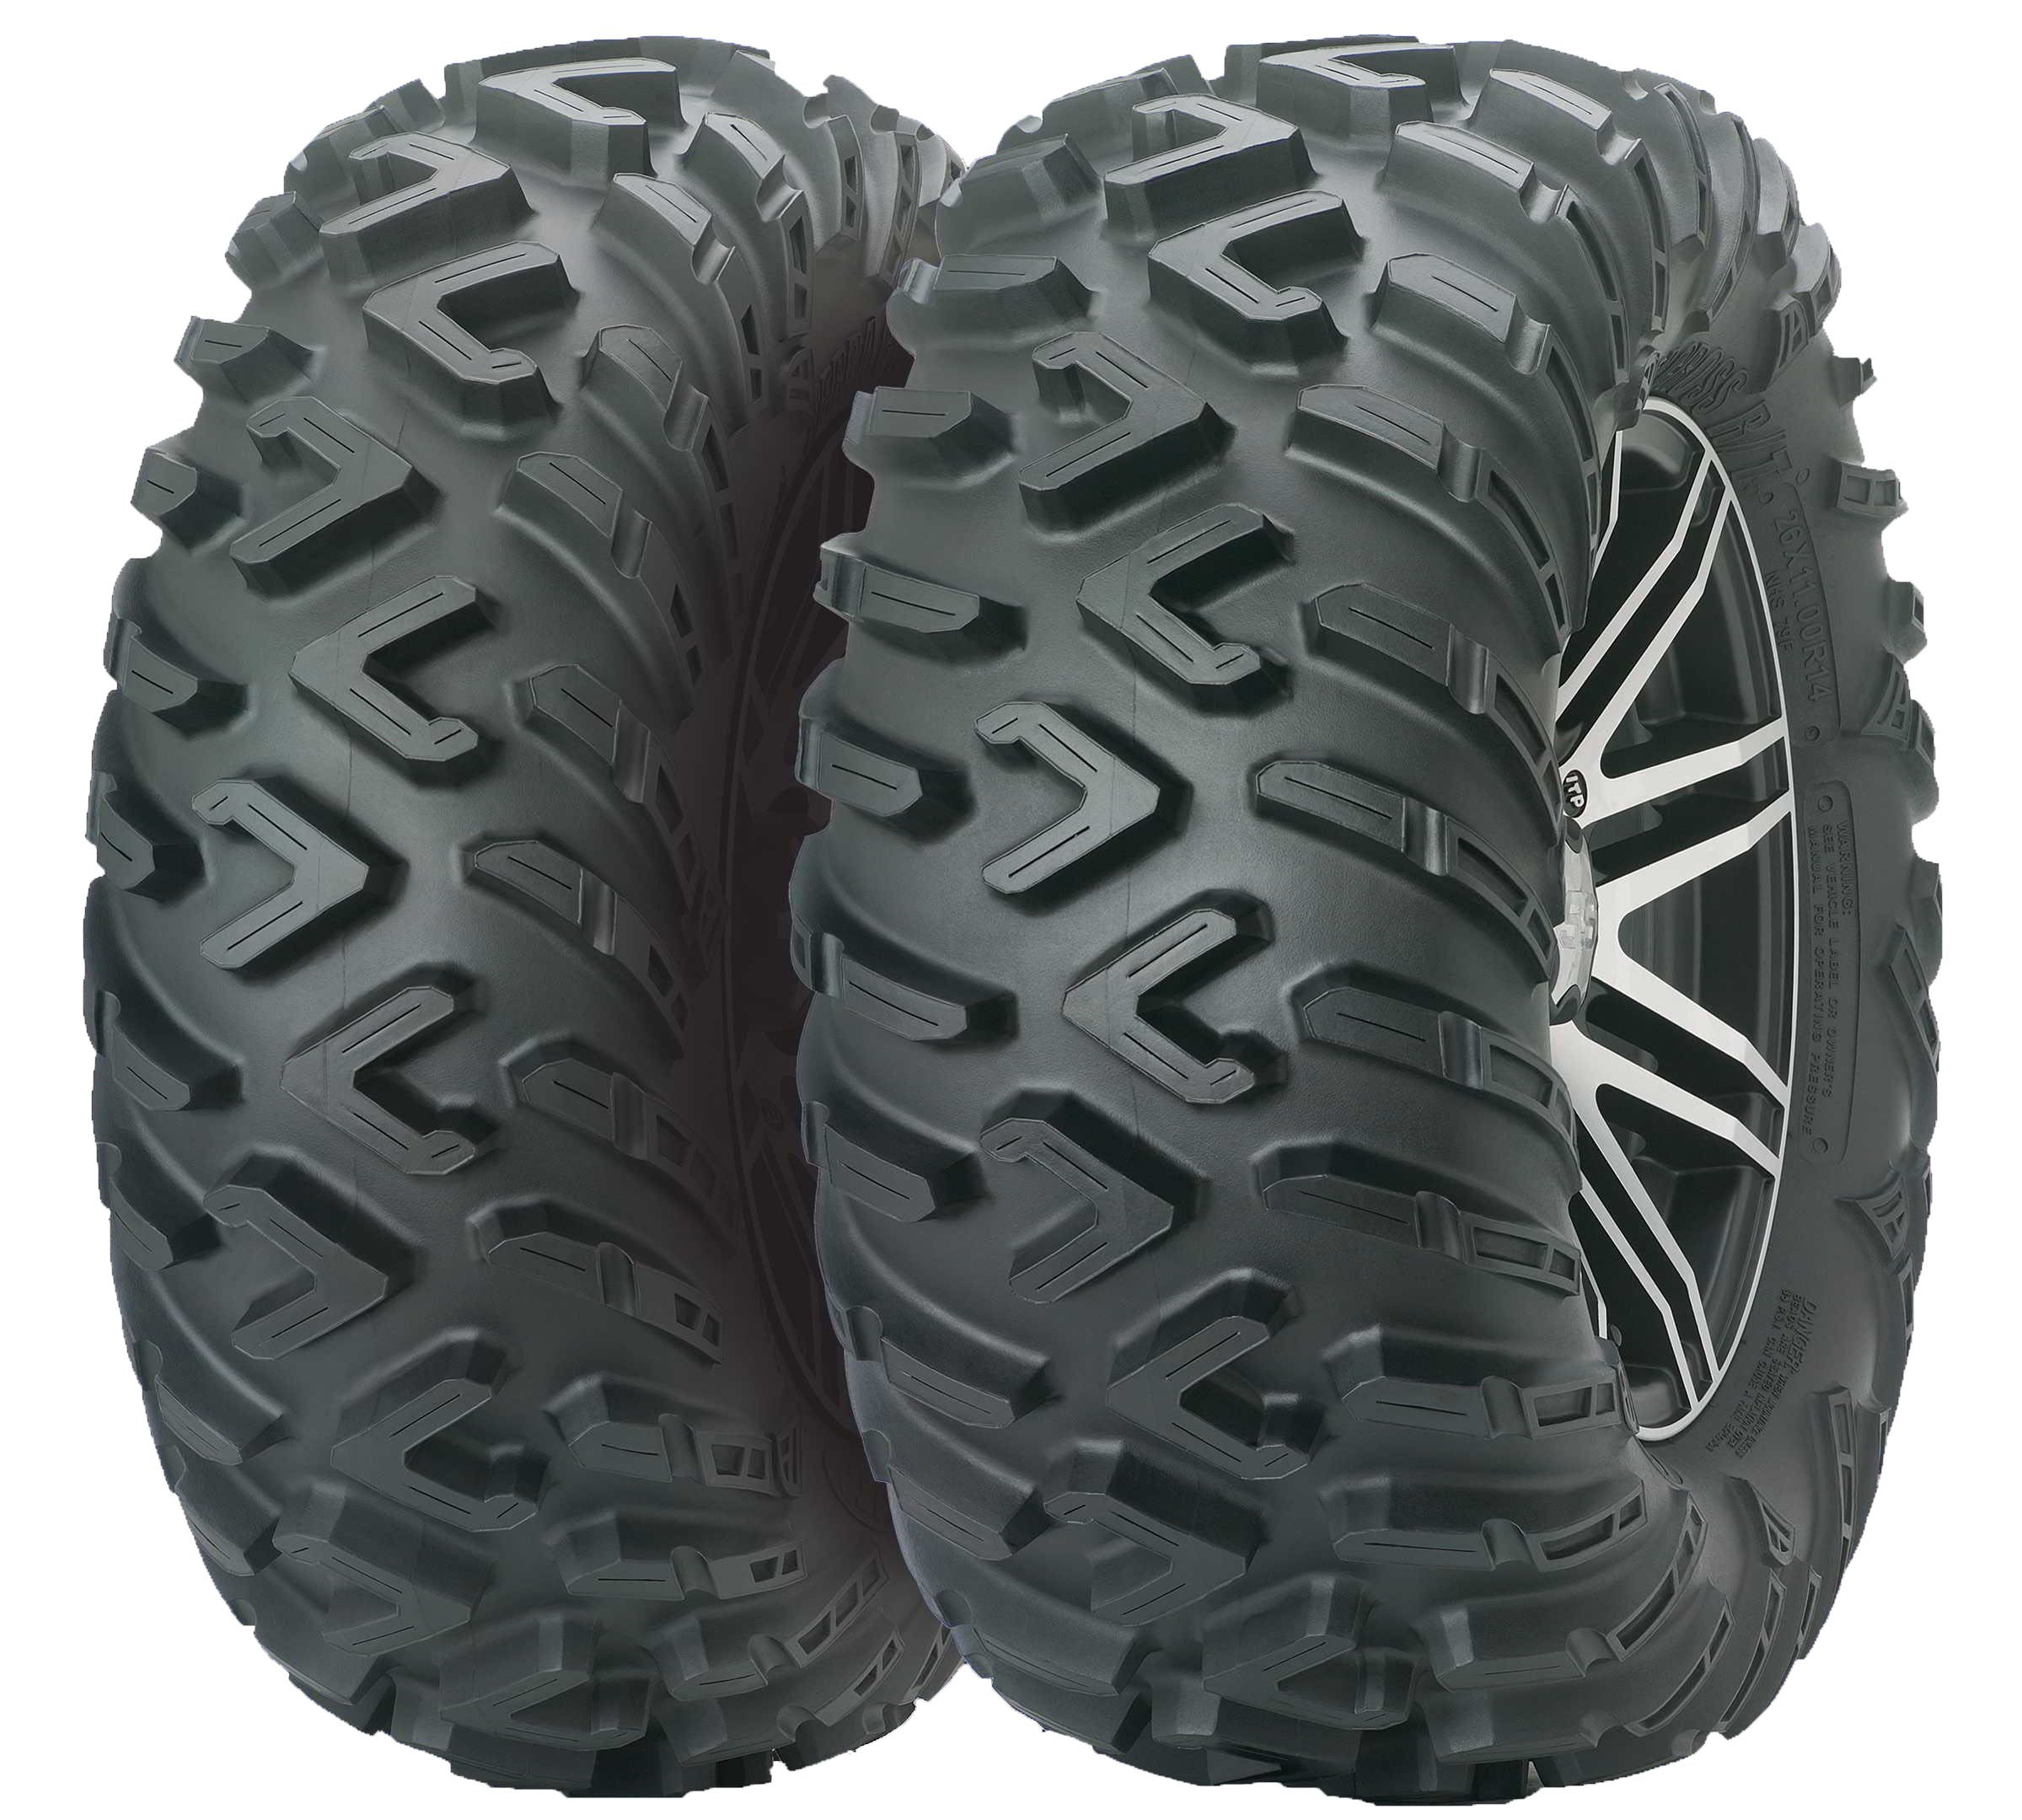 ITP TerraCross R/T Mud Terrain ATV Tire 26x11R12 by ITP (Image #1)